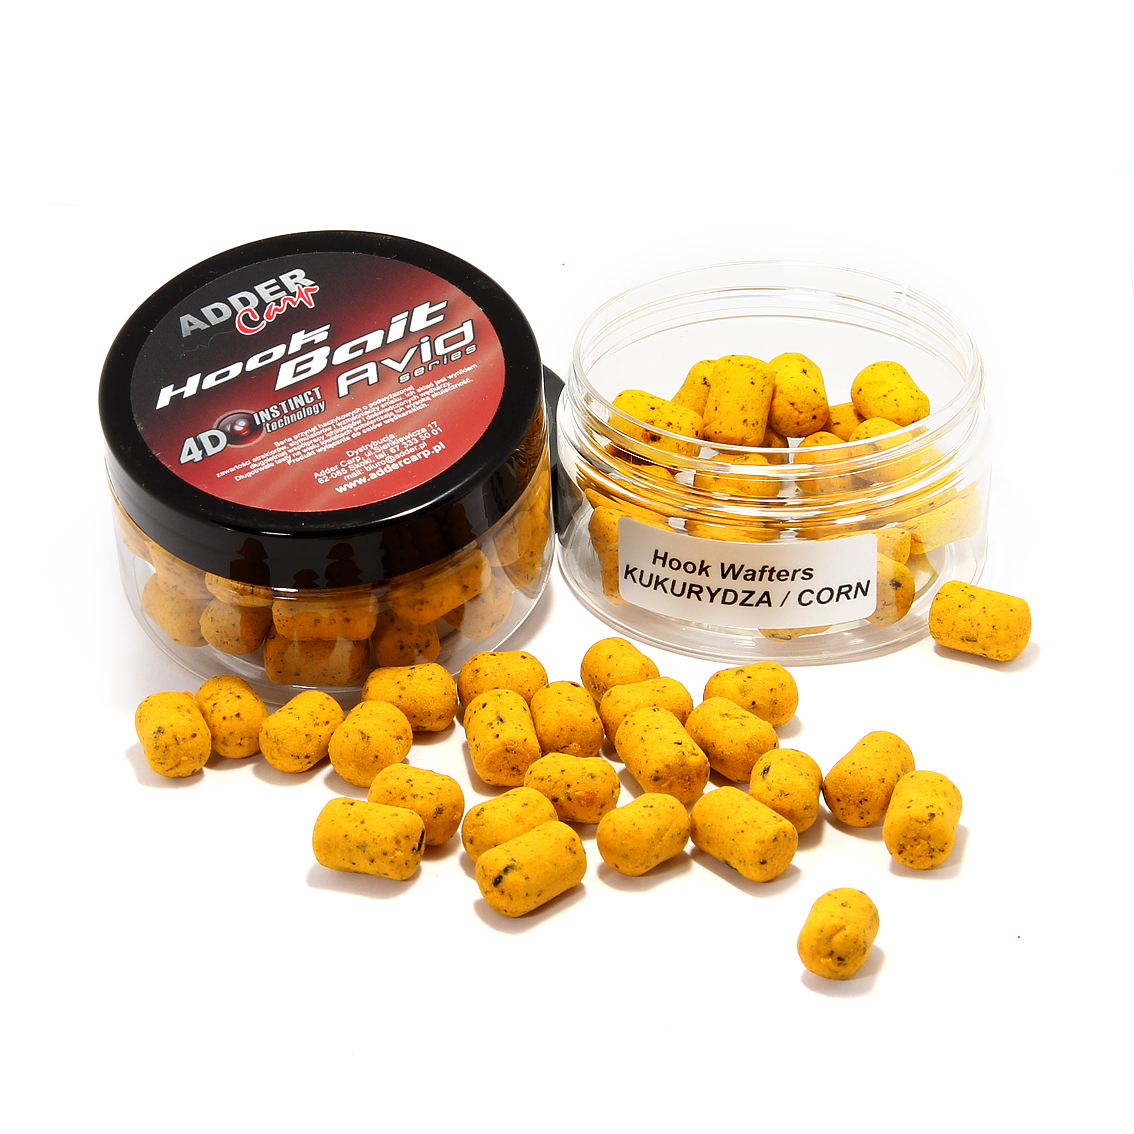 Hook WAFTERS DUMBELL AVID 10/14mm